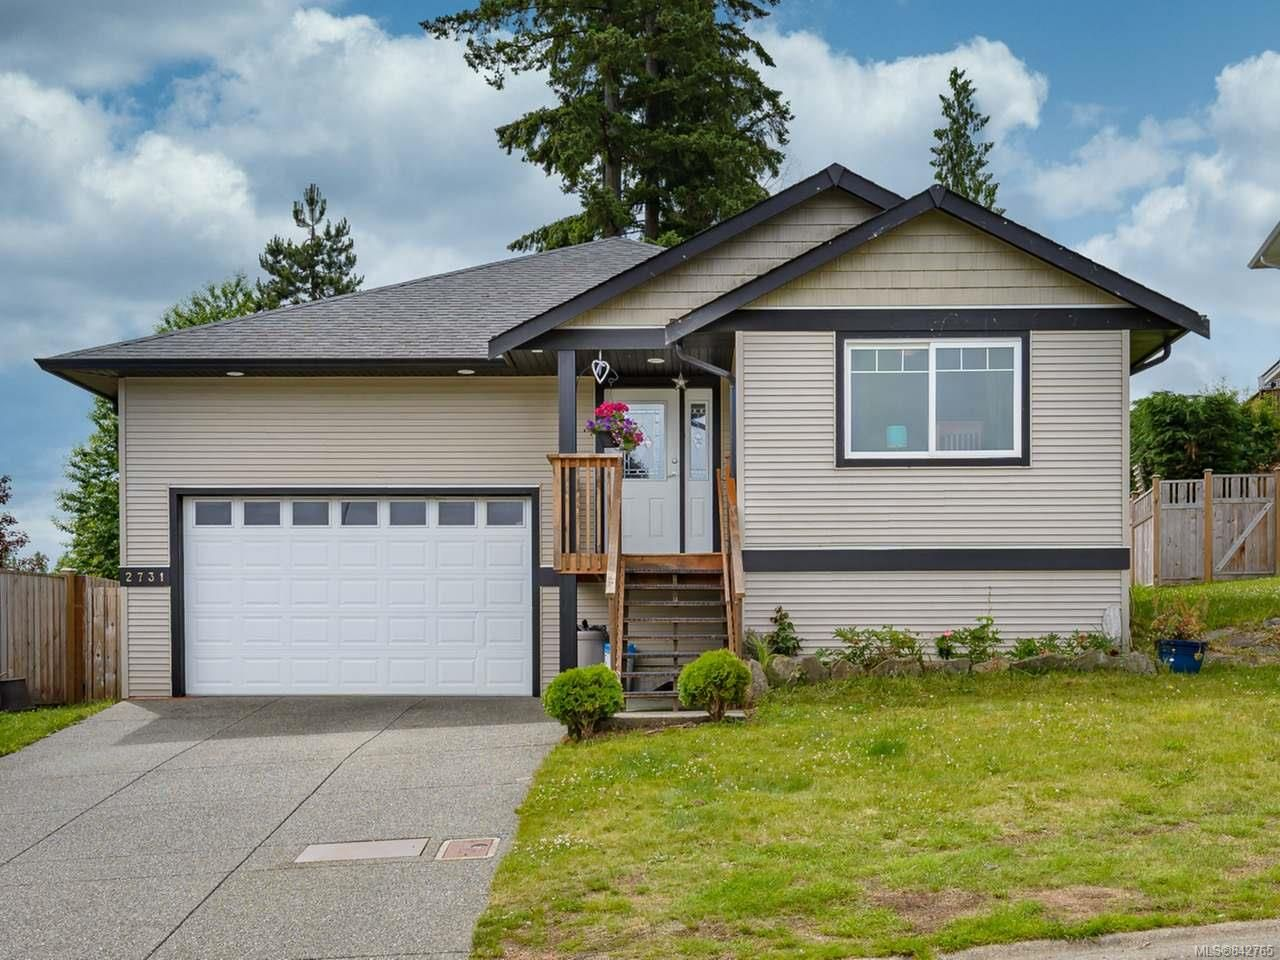 Main Photo: 2731 Rydal Ave in CUMBERLAND: CV Cumberland House for sale (Comox Valley)  : MLS®# 842765